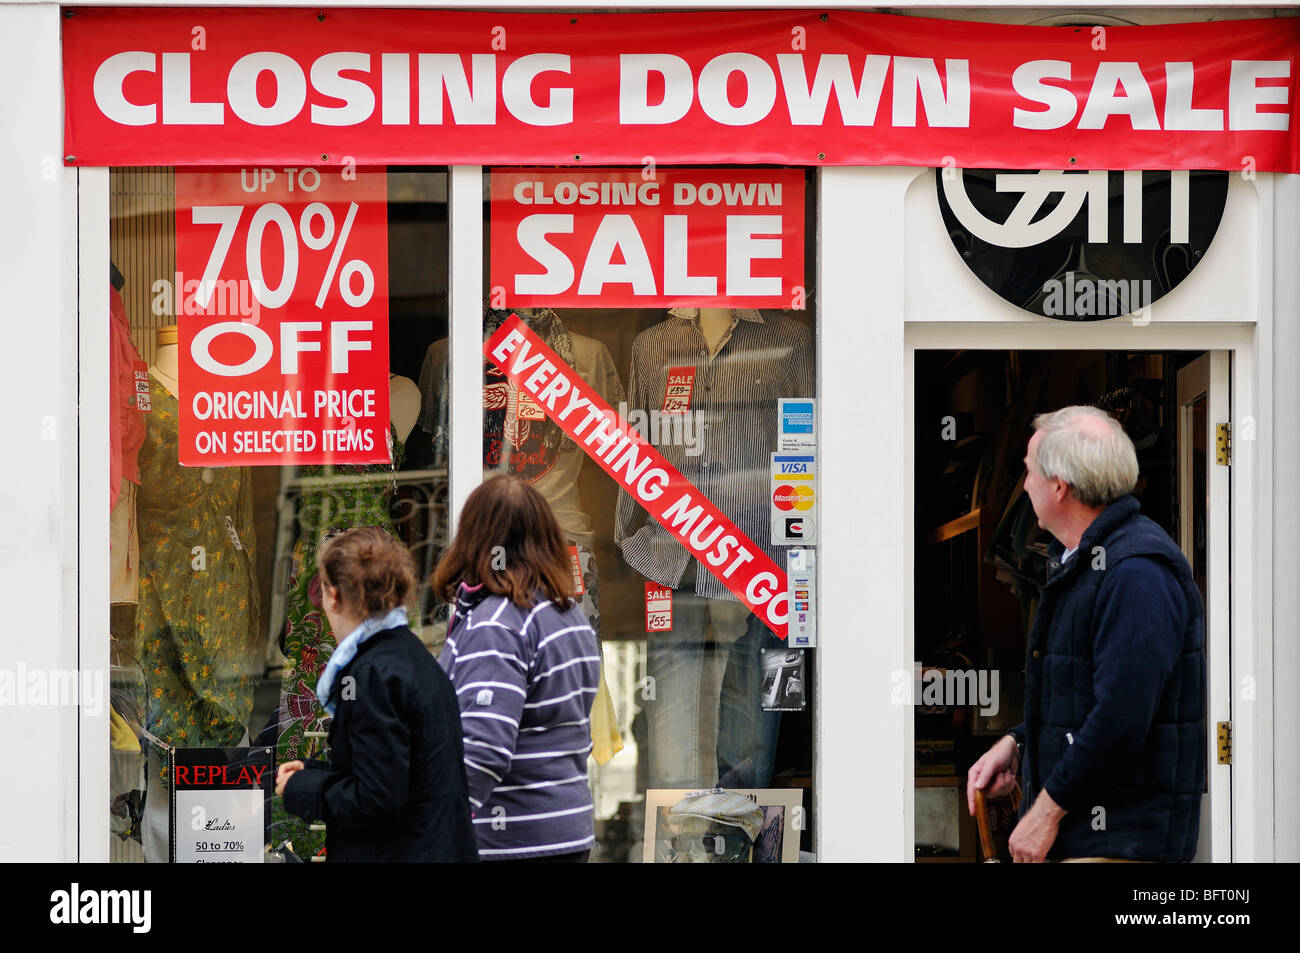 Closing Down Sale, Oxford, United Kingdom. - Stock Image